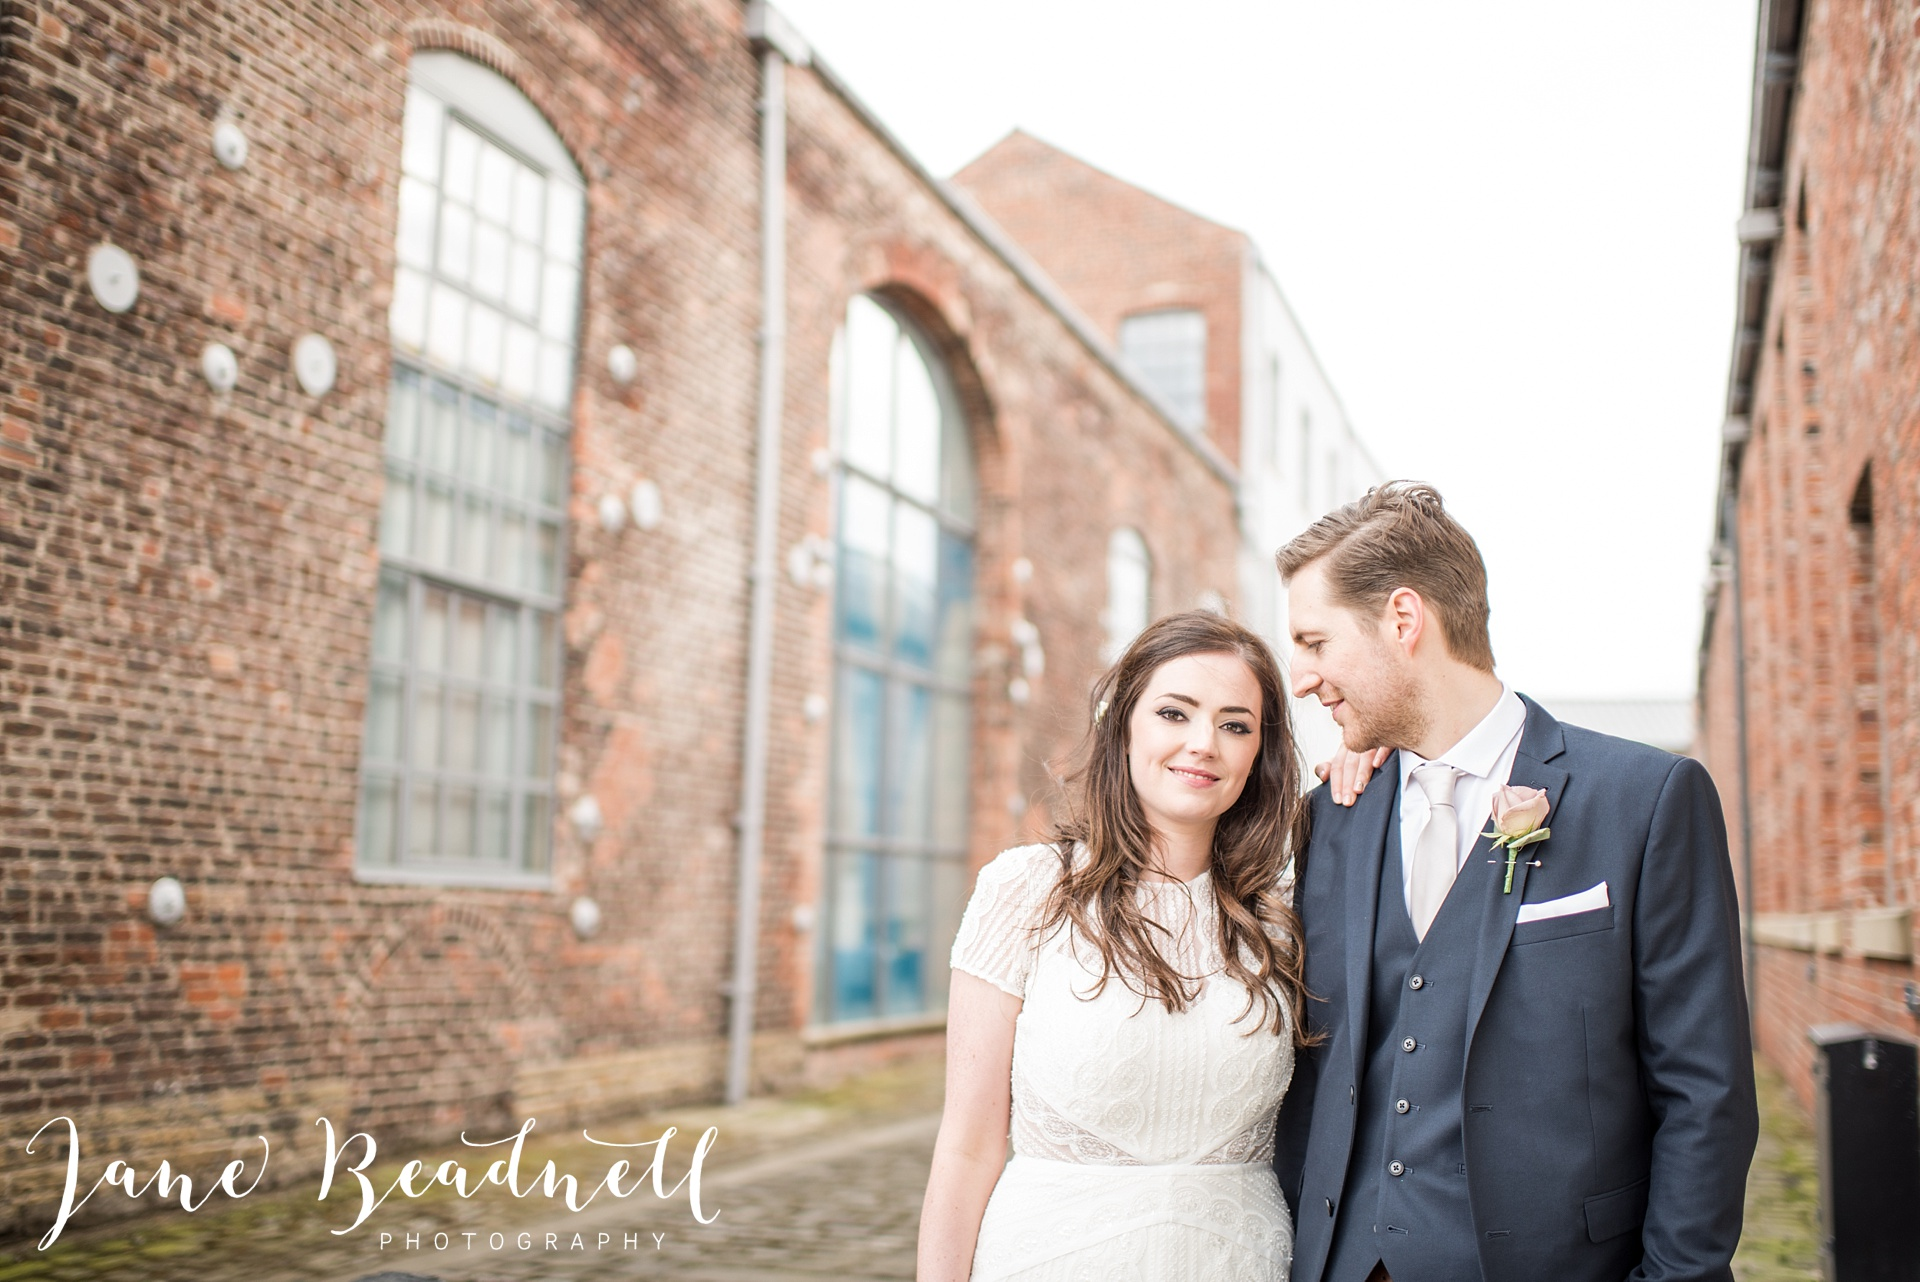 Wedding photography Cross Keys Leeds Wedding Jane Beadnell Photography_0119